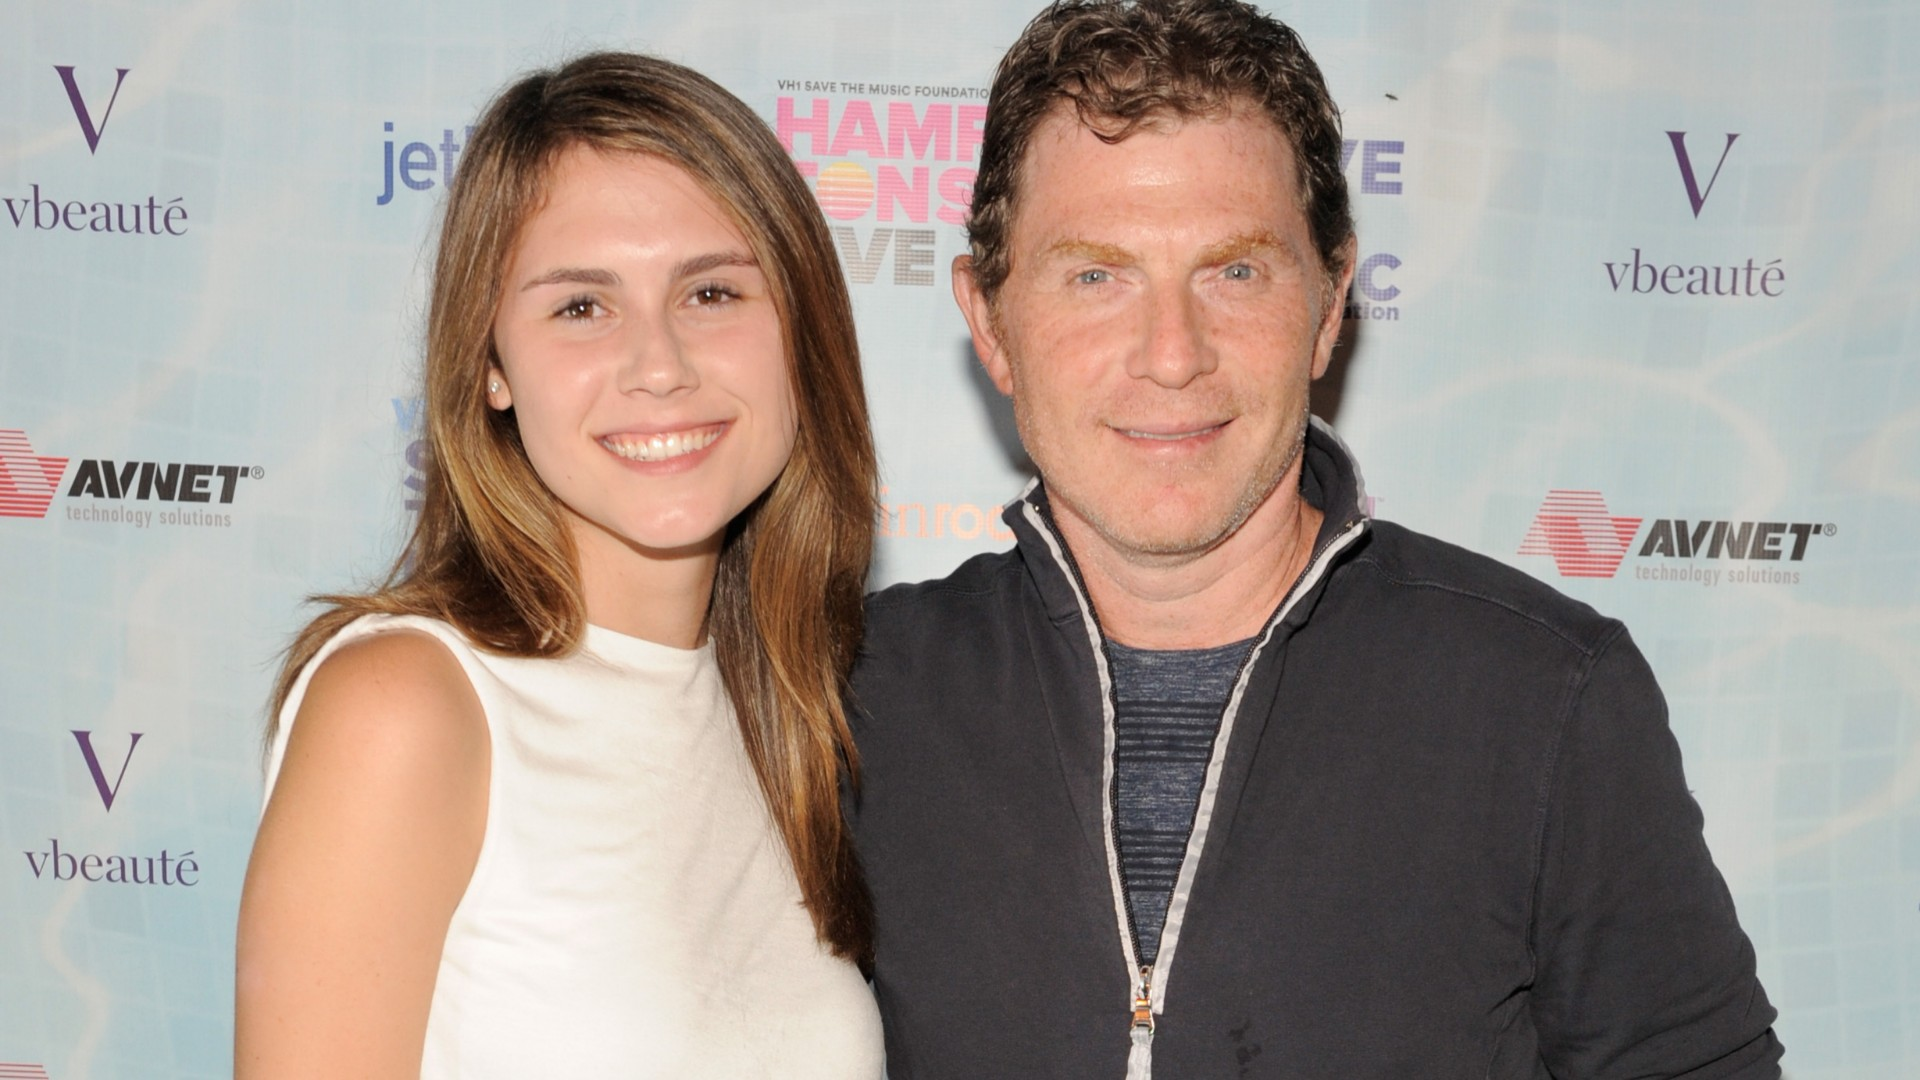 Bobby Flay Is Debuting a New Show With His Daughter, Sophie Flay